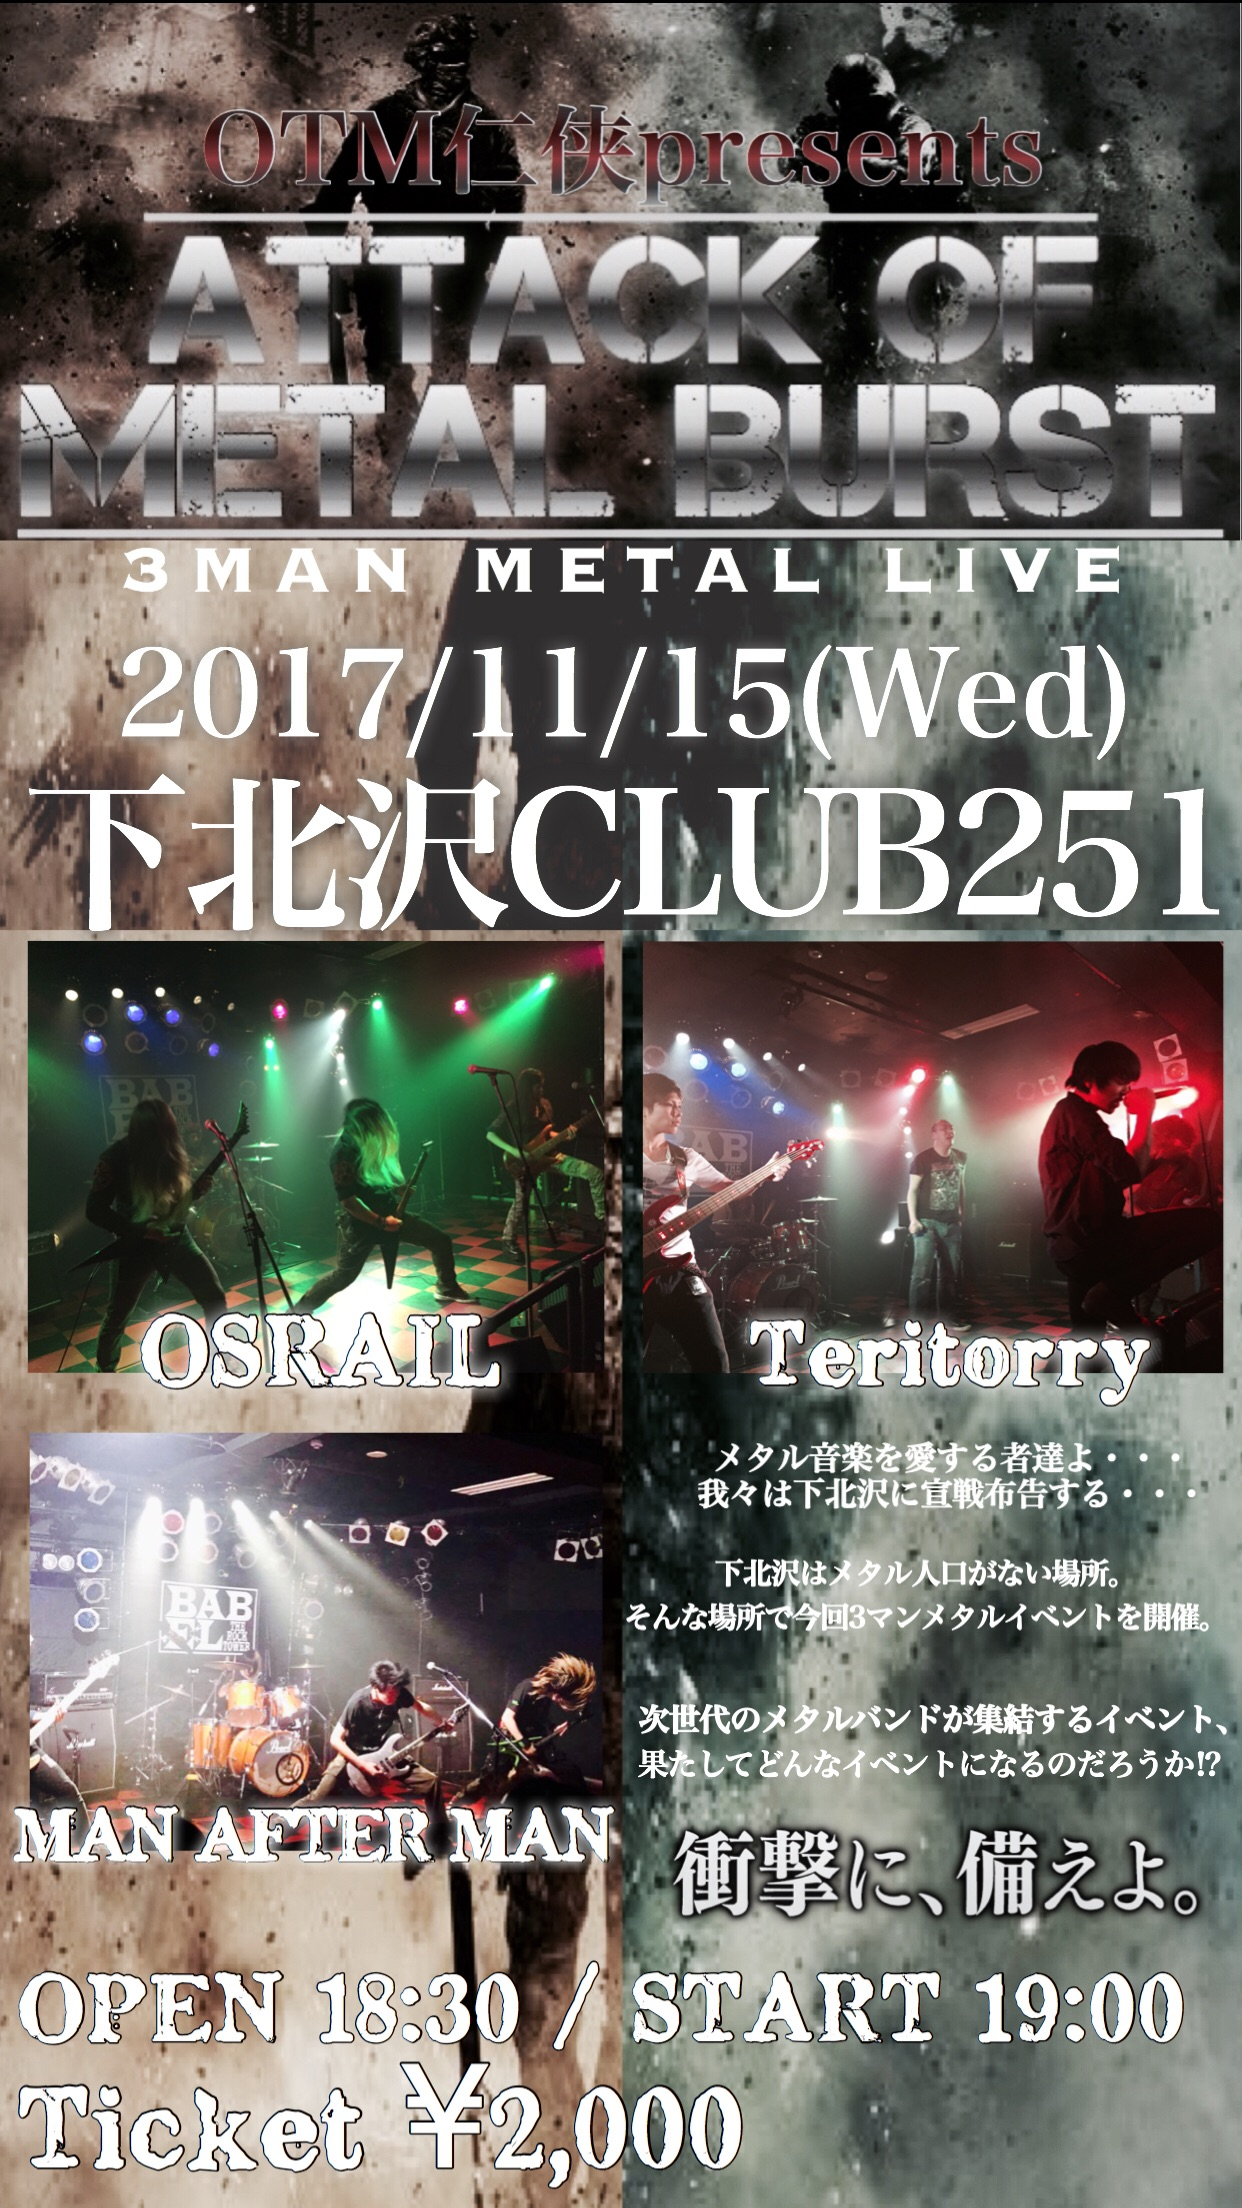 CLUB251 AUTUMN THANKS FEST「FUYU/MACHI感謝祭」OTM仁侠 presents ATTACK OF METAL BURST